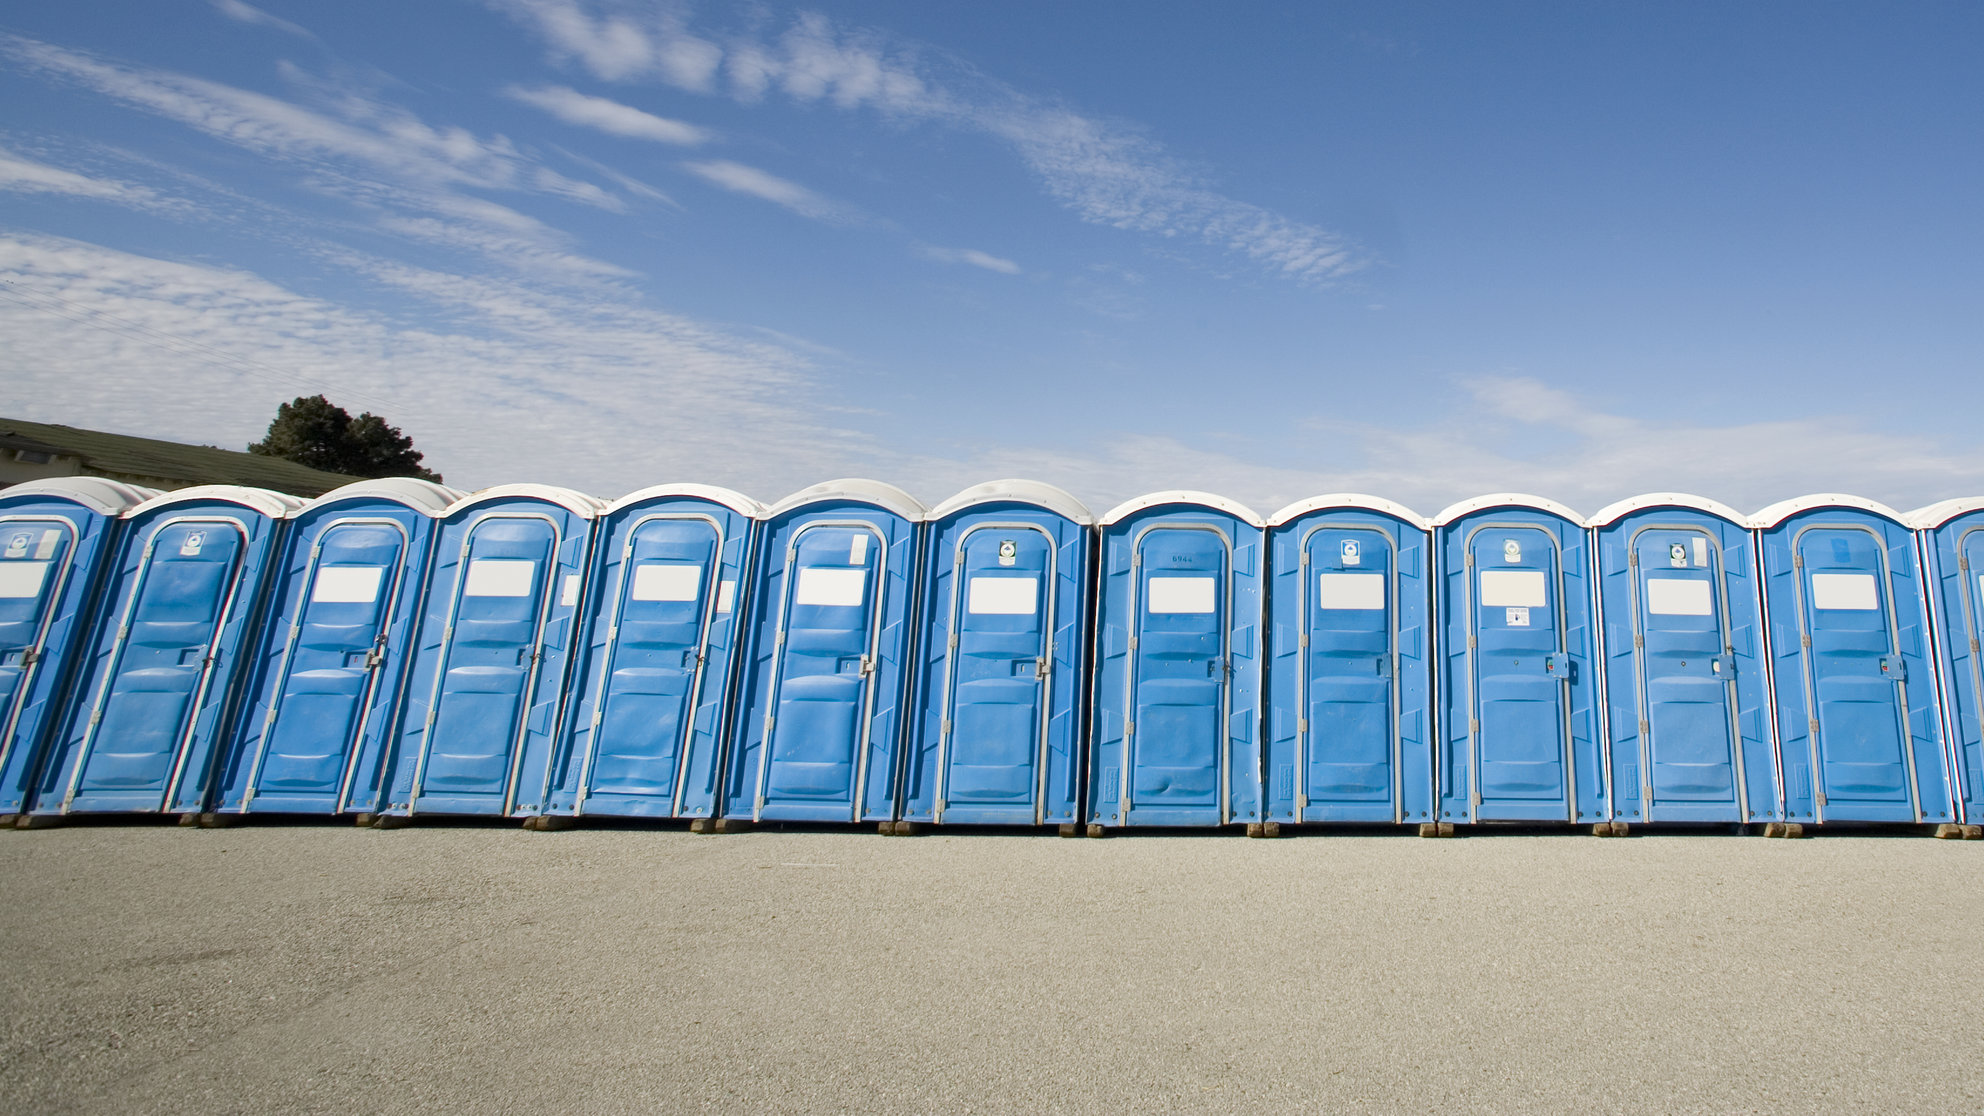 portapotty-run-poop-bathroom